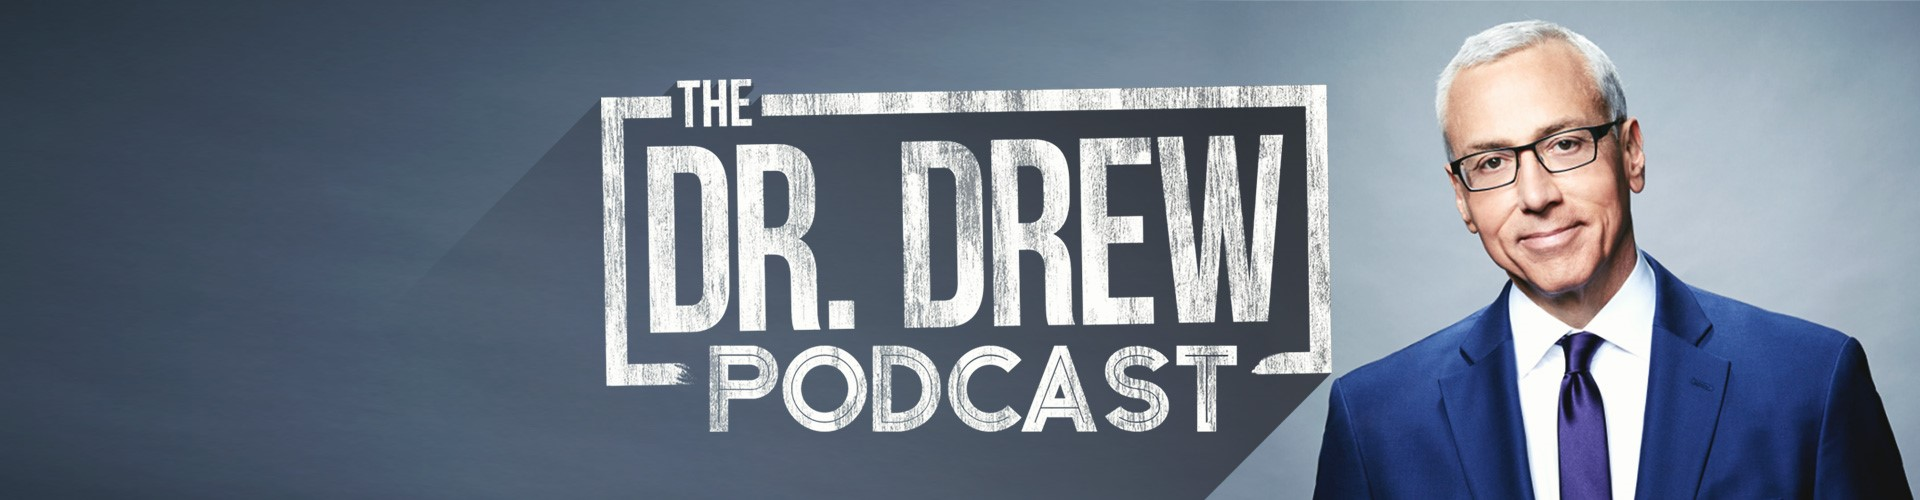 The Dr. Drew Podcast